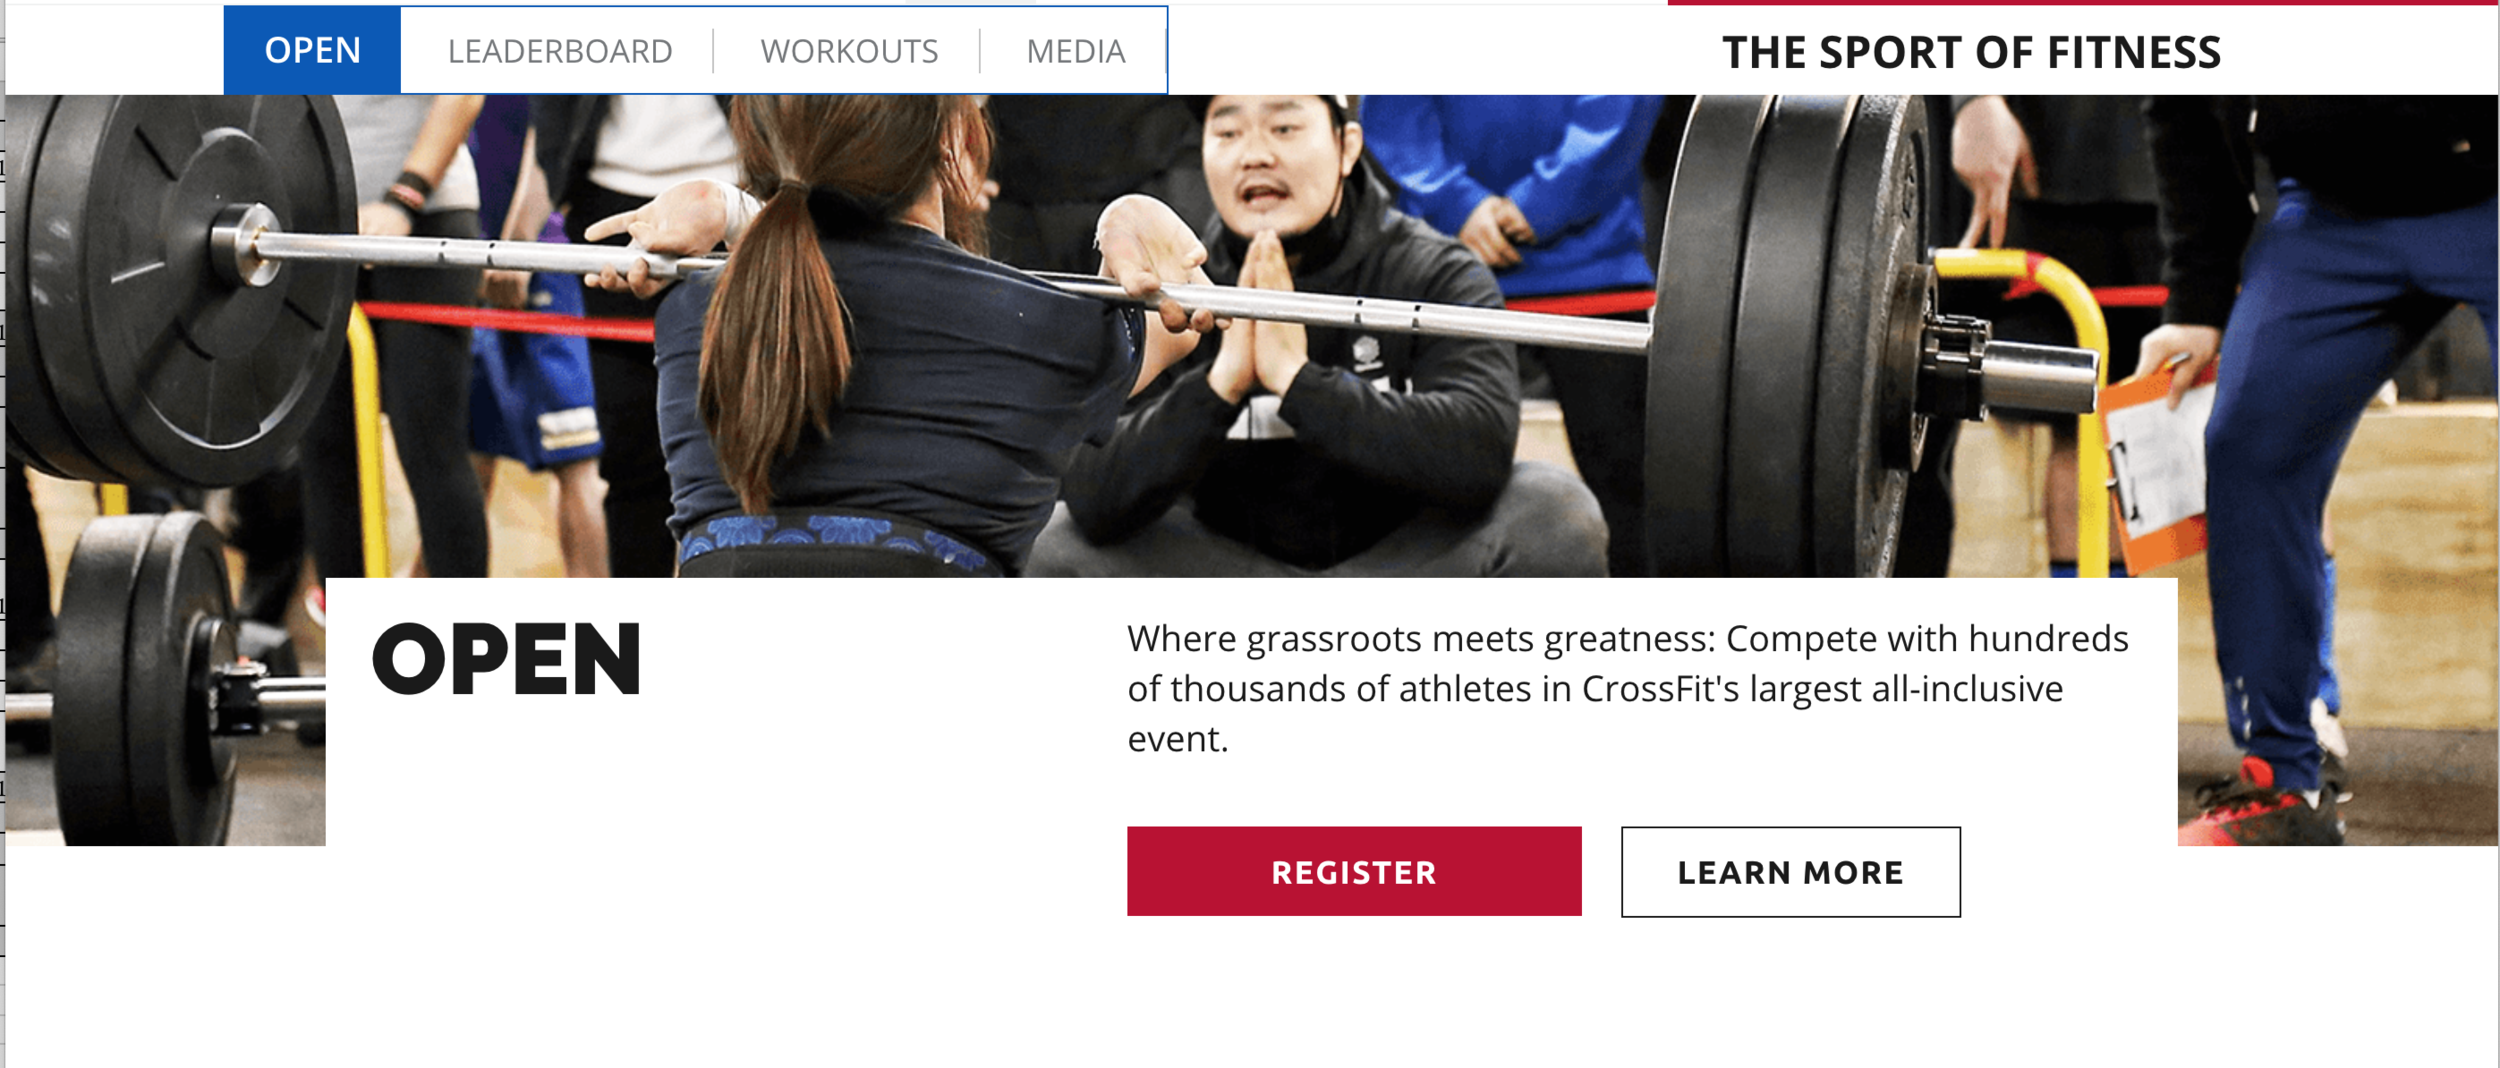 STEP ONE - Go to games.crossfit.com and either login to your existing account or create a new Games Site account.